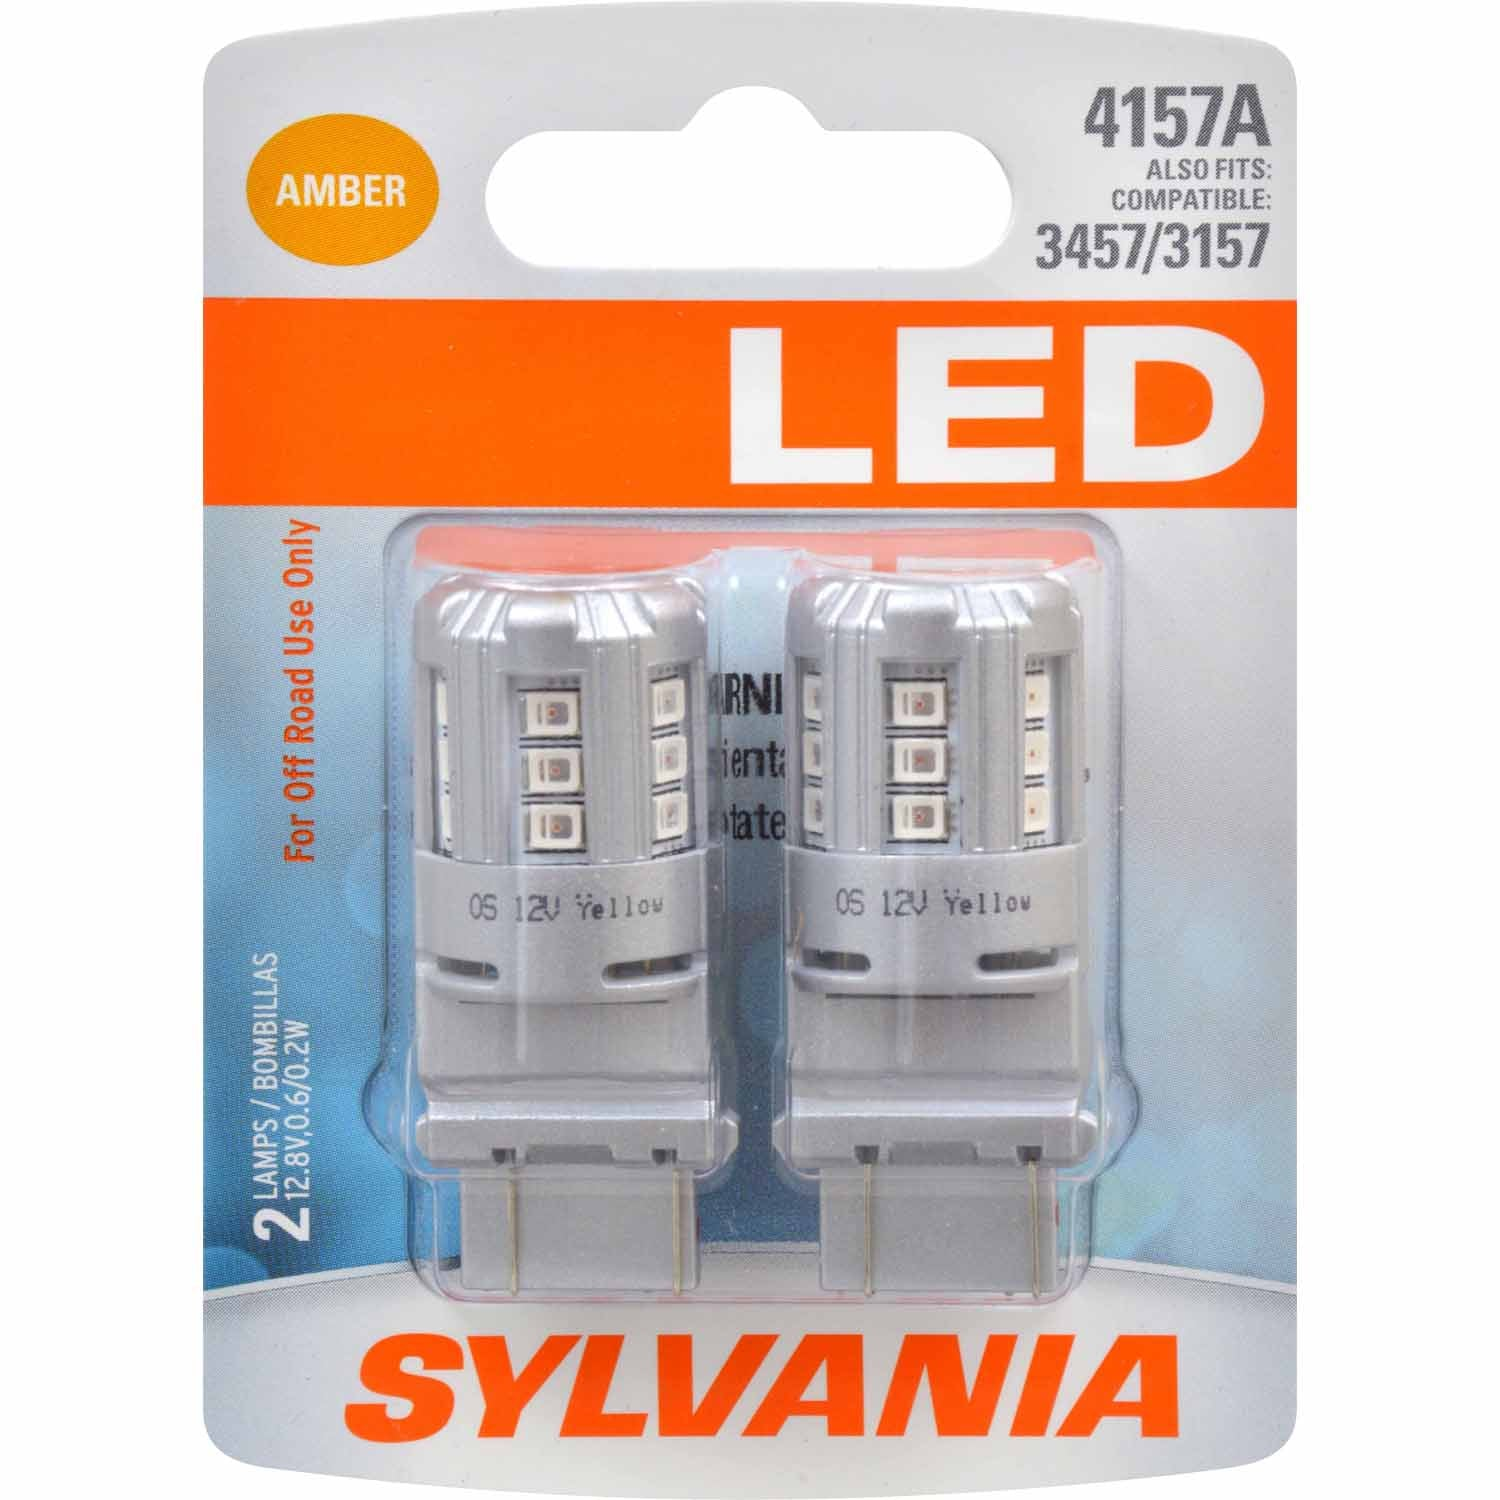 2-PK SYLVANIA 4157 Amber LED Automotive Bulb - also fits 3457 & 3157